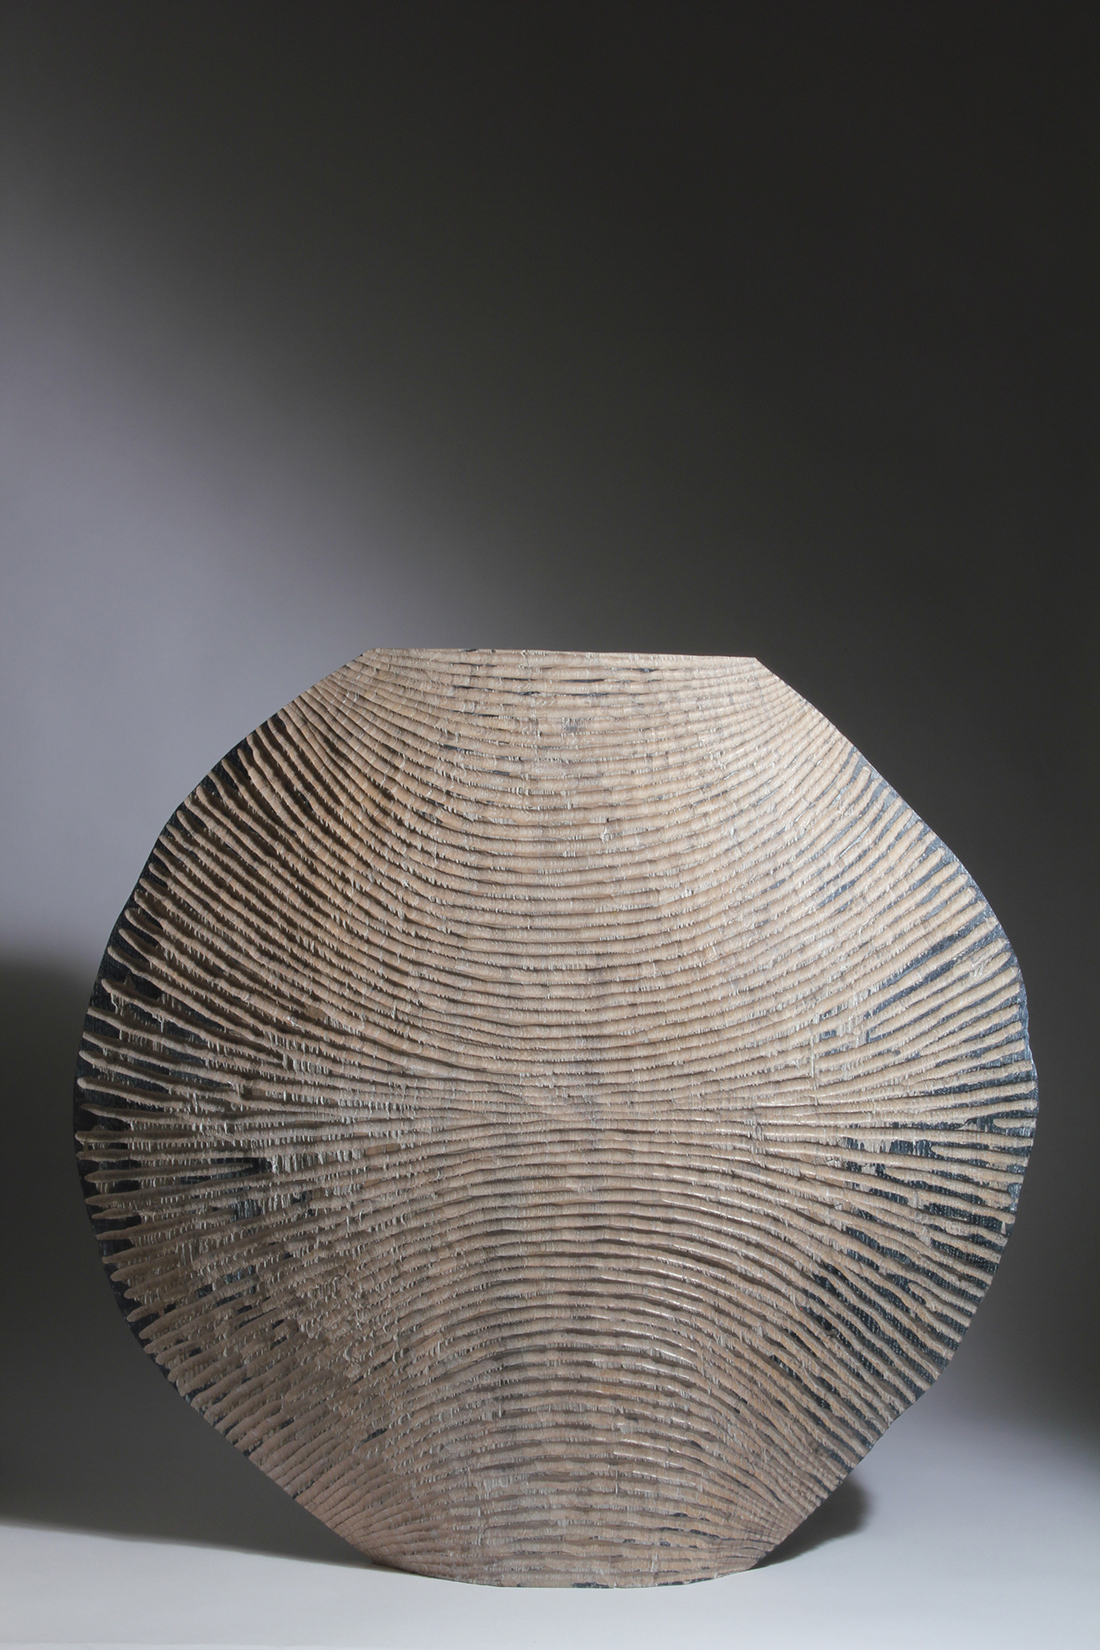 Malcolm Martin and Gaynor Dowling: Vessels in Wood